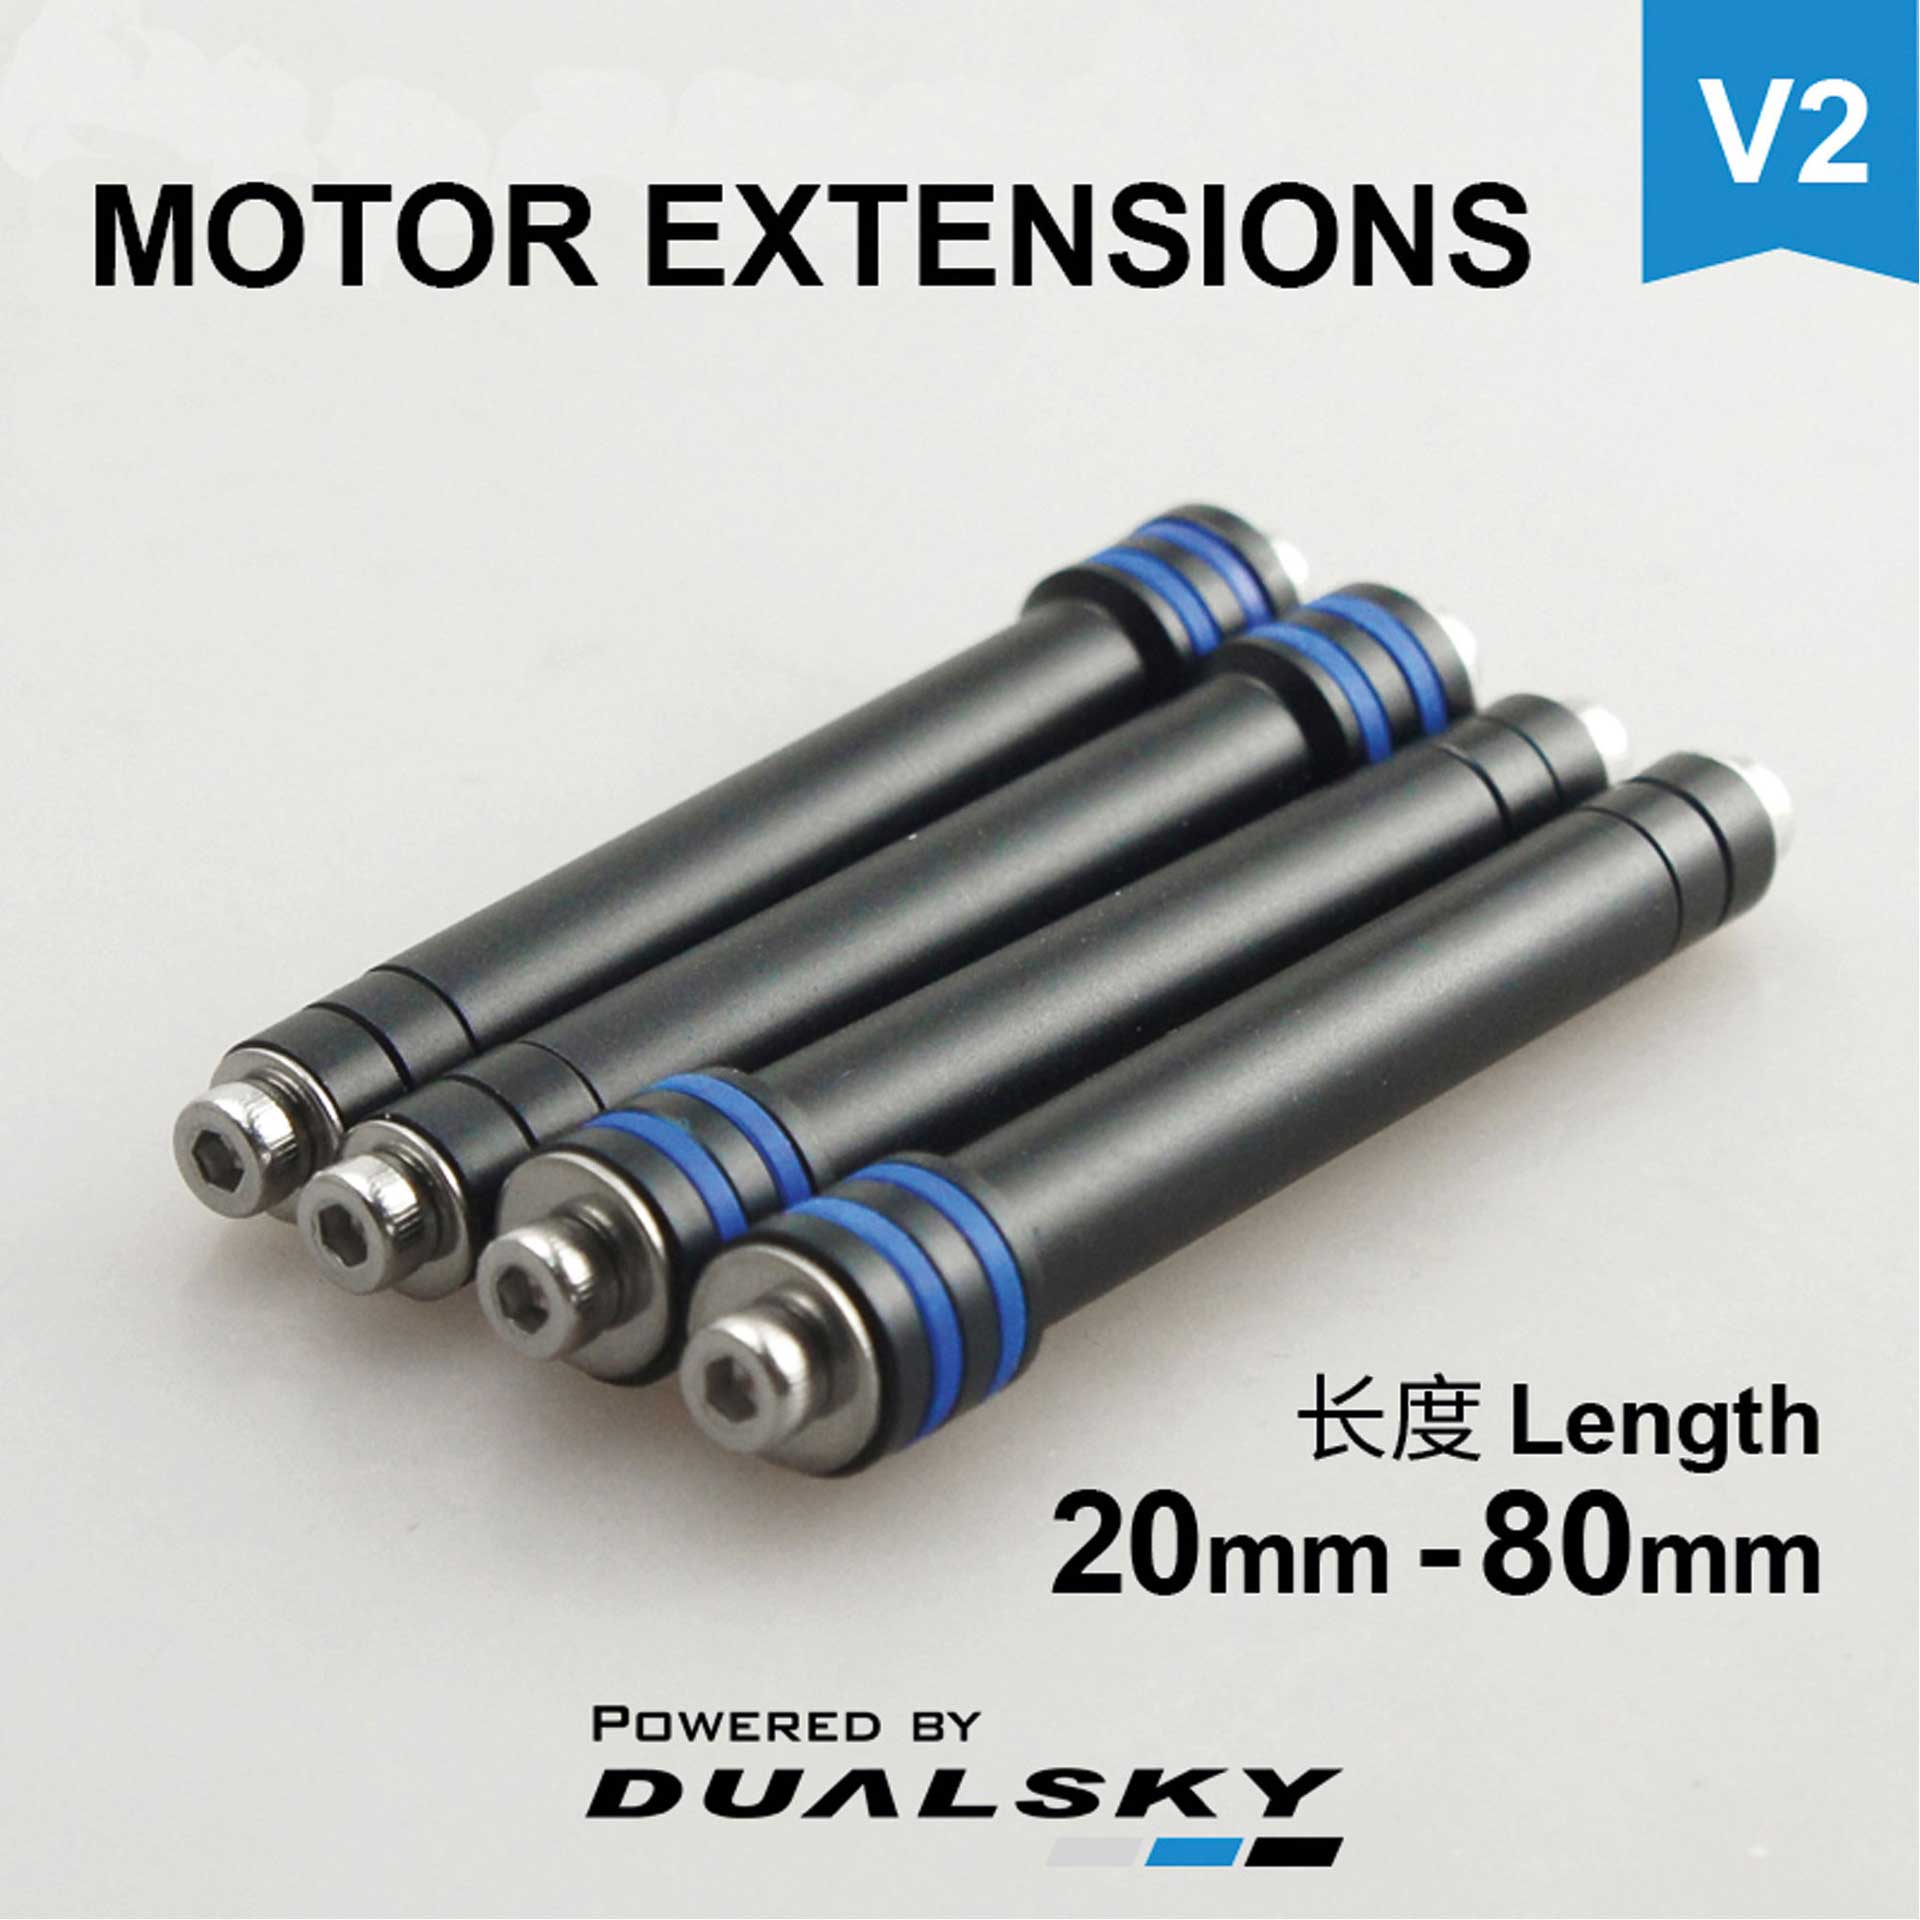 DUALSKY MOTOR EXTENSIONS V5 ME3-80 LENGTH 60 TO 80MM ADJUSTABLE WITH SCREWS stand off